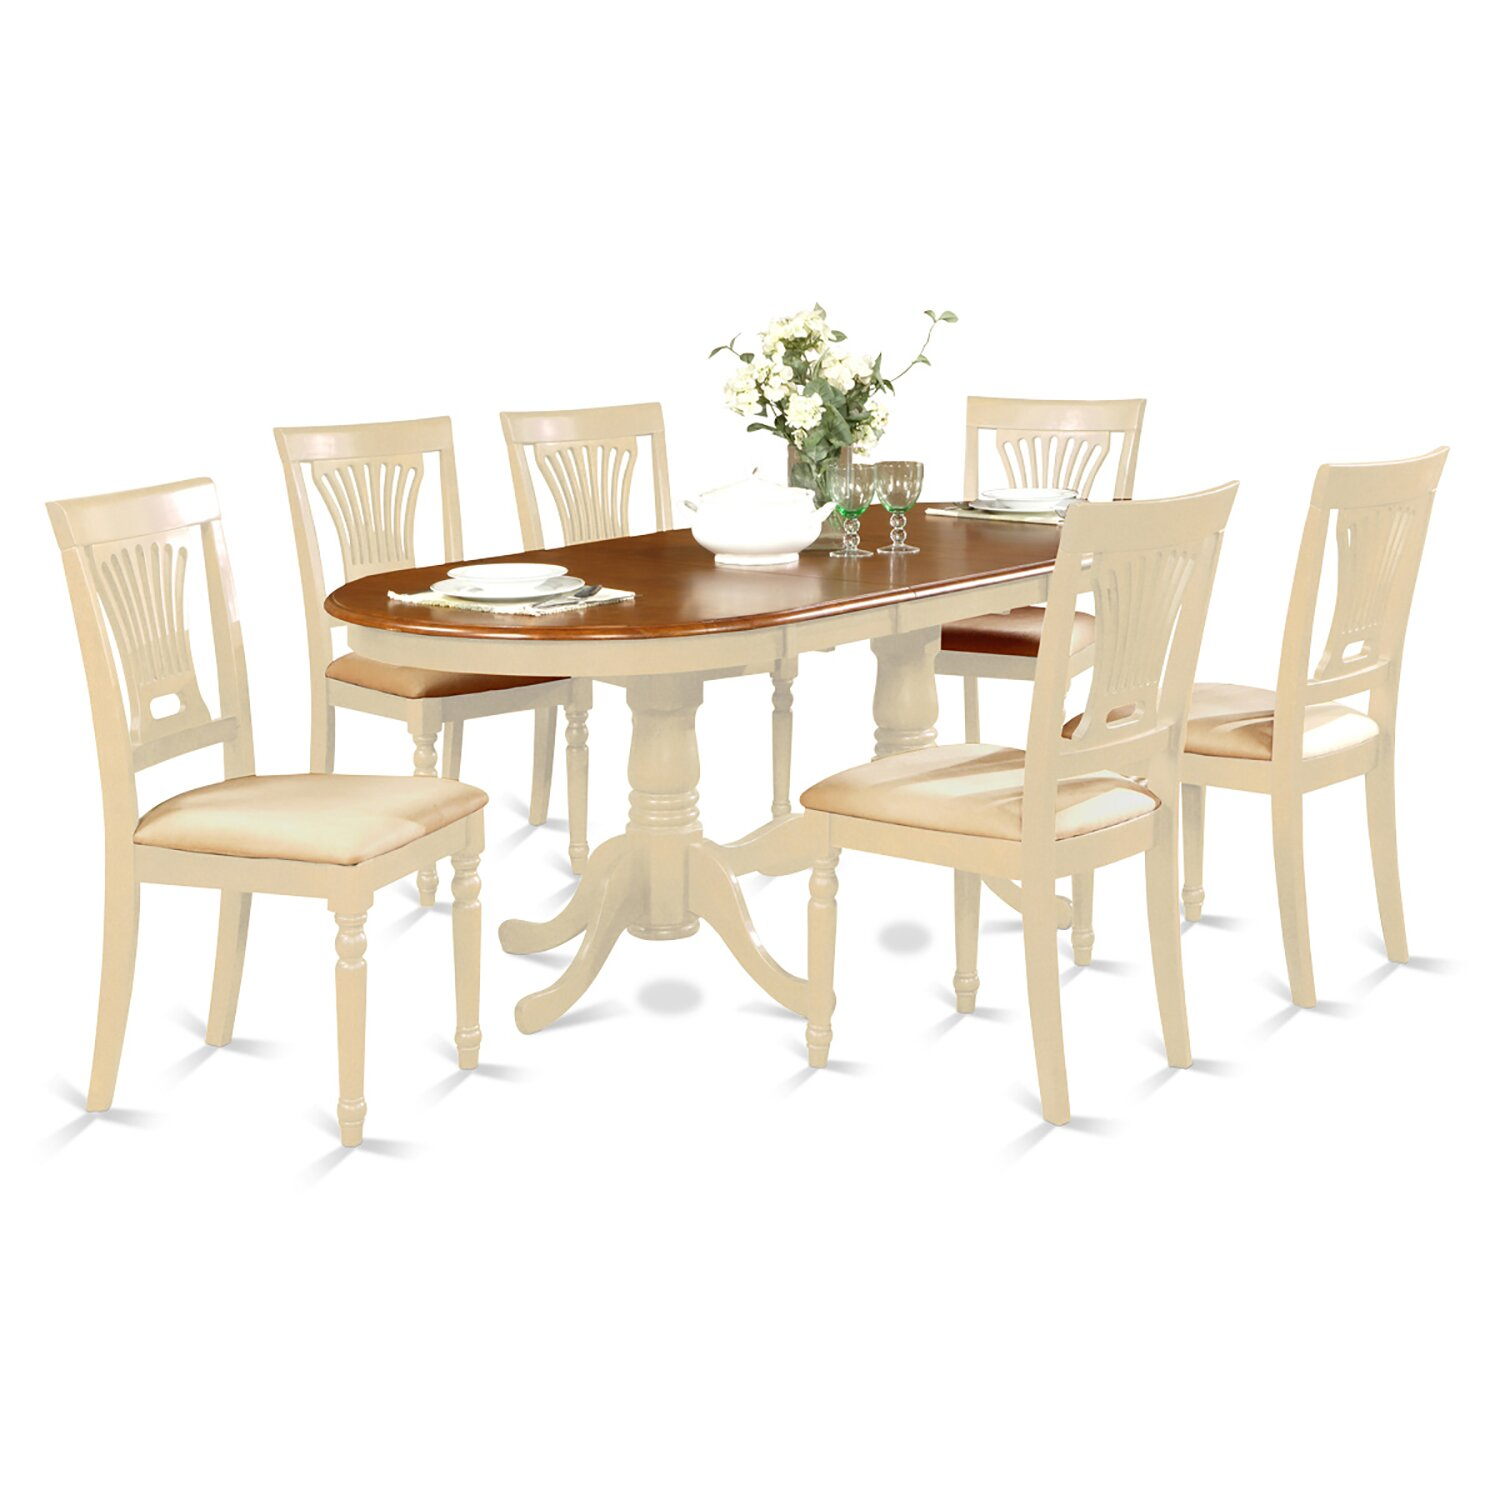 Darby home co germantown 7 piece dining set reviews for 7 piece dining set